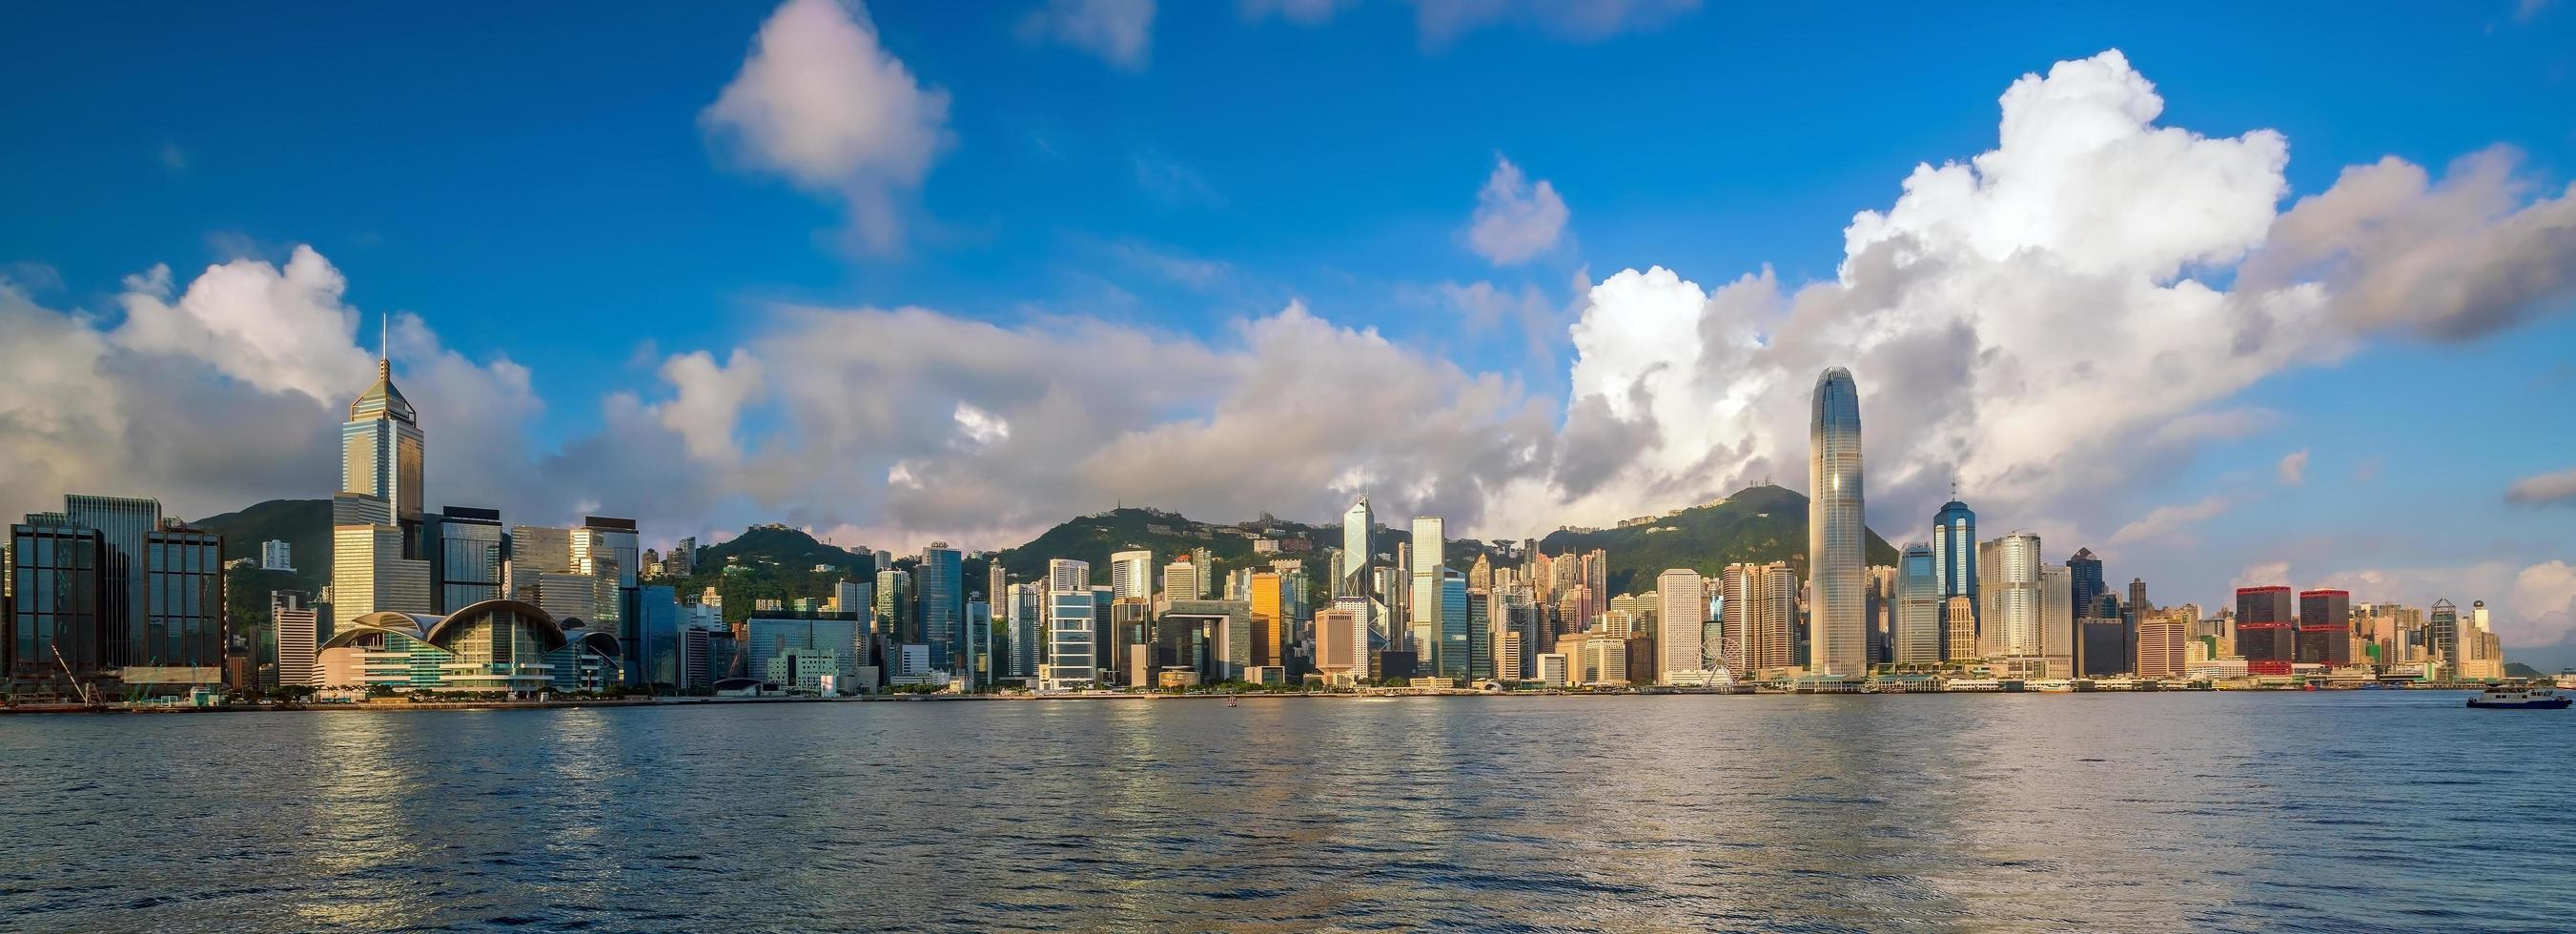 Victoria Harbour and Hong Kong skyline photo